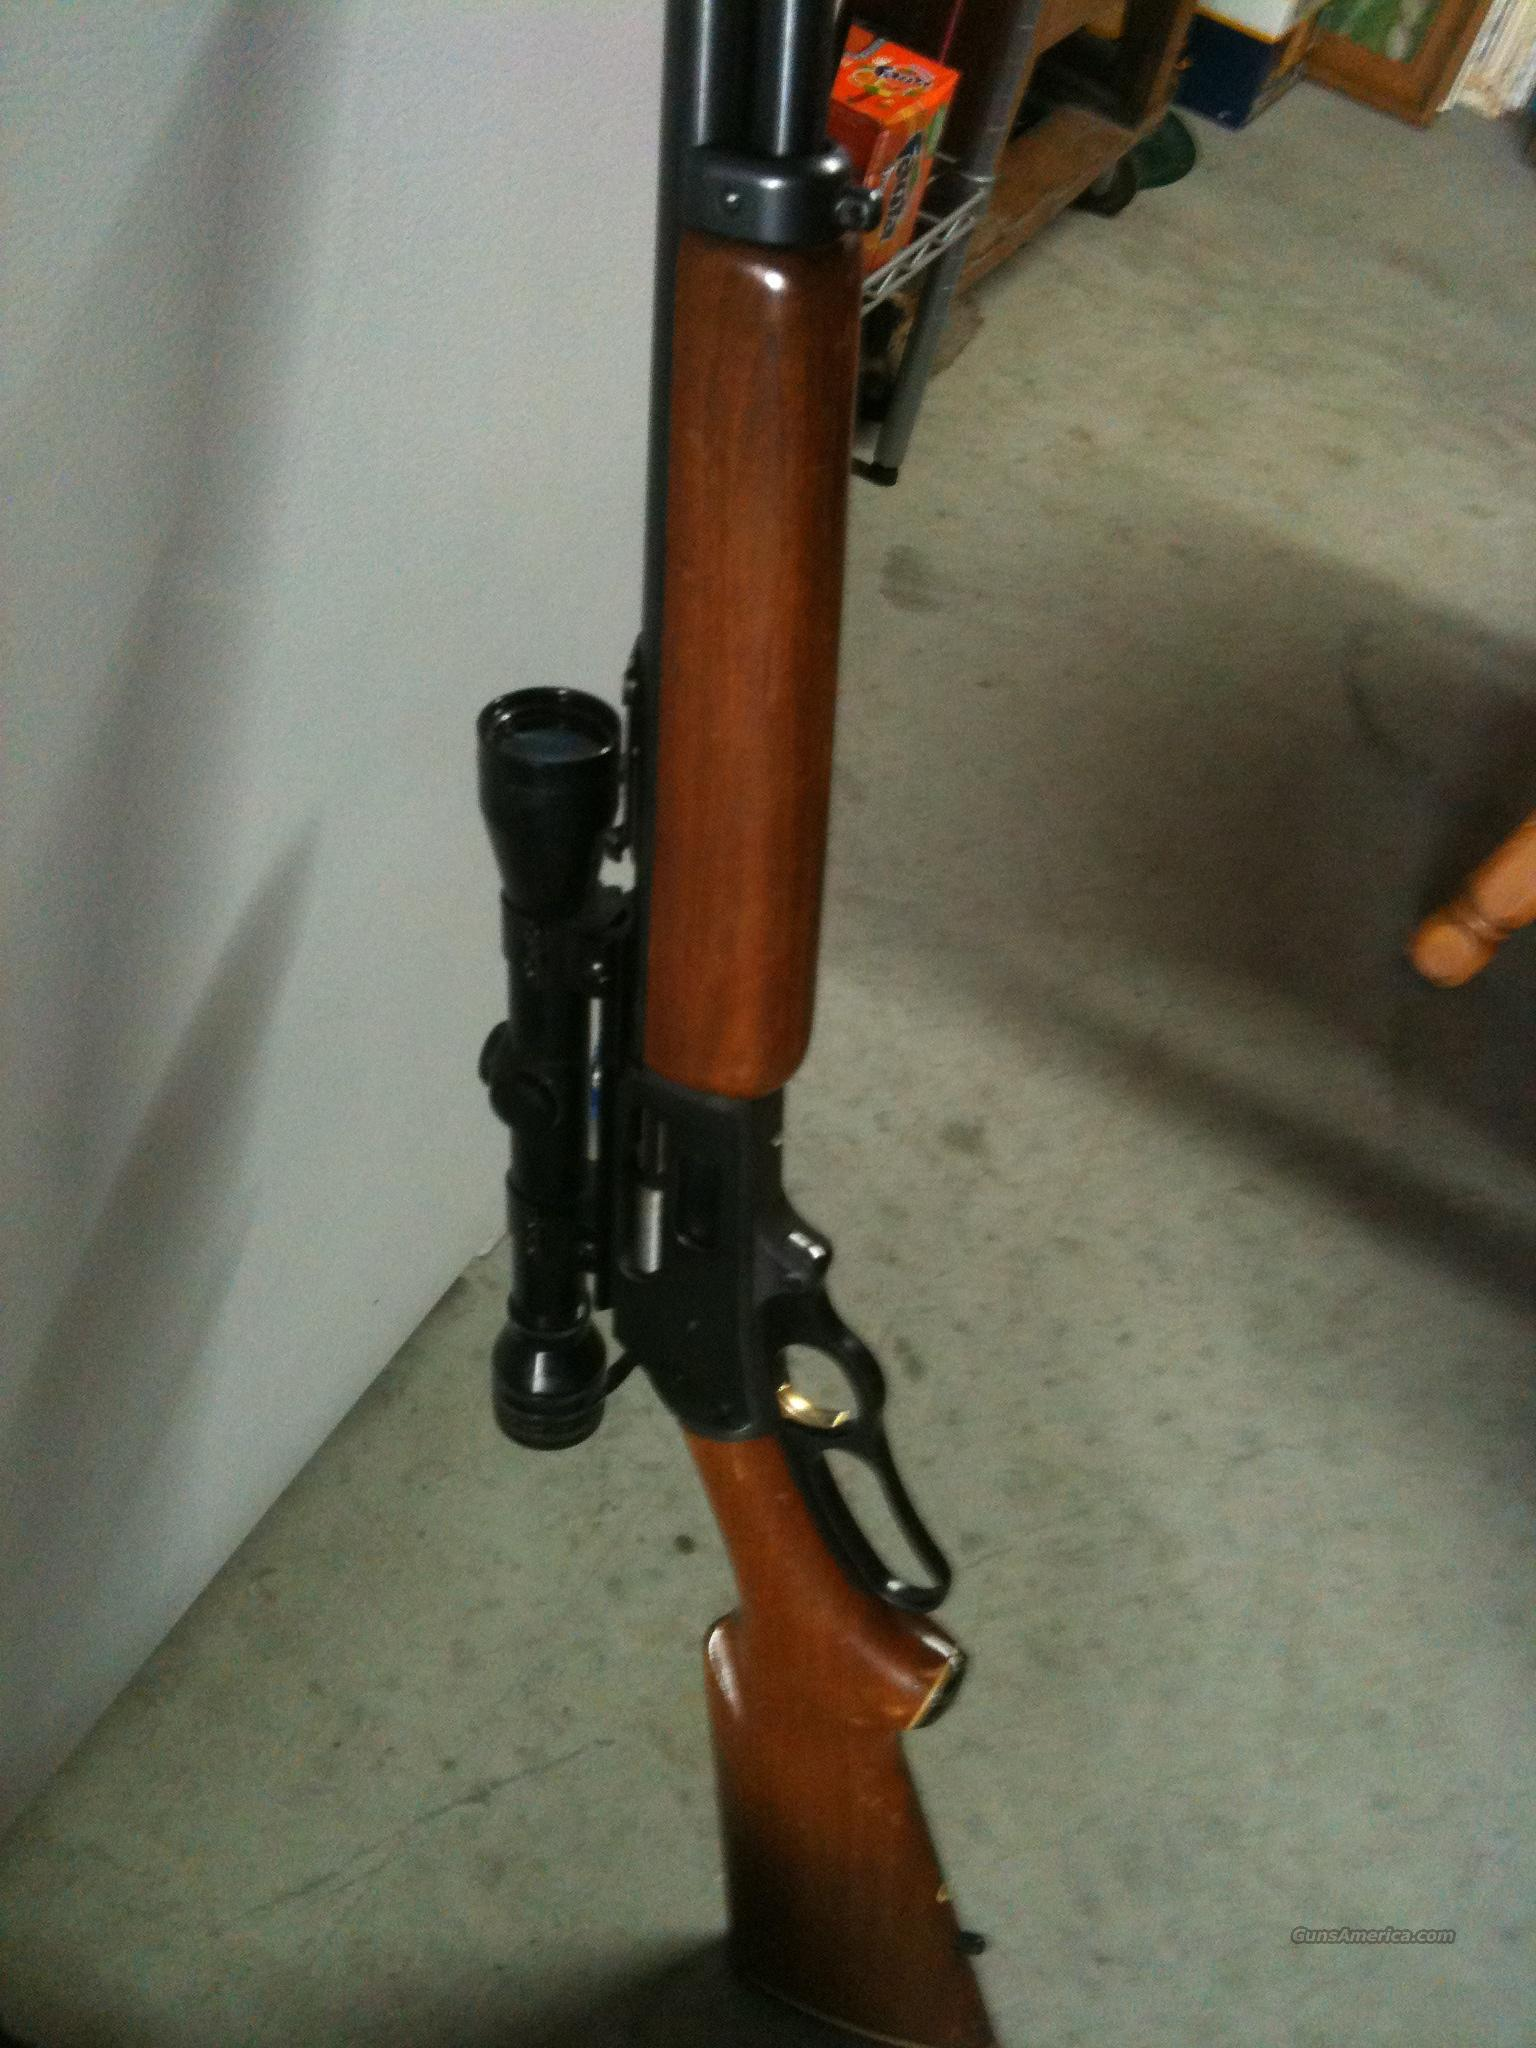 MARLIN 444 LEVER ACTION RIFLE WITH SCOPE  Guns > Rifles > Marlin Rifles > Modern > Lever Action